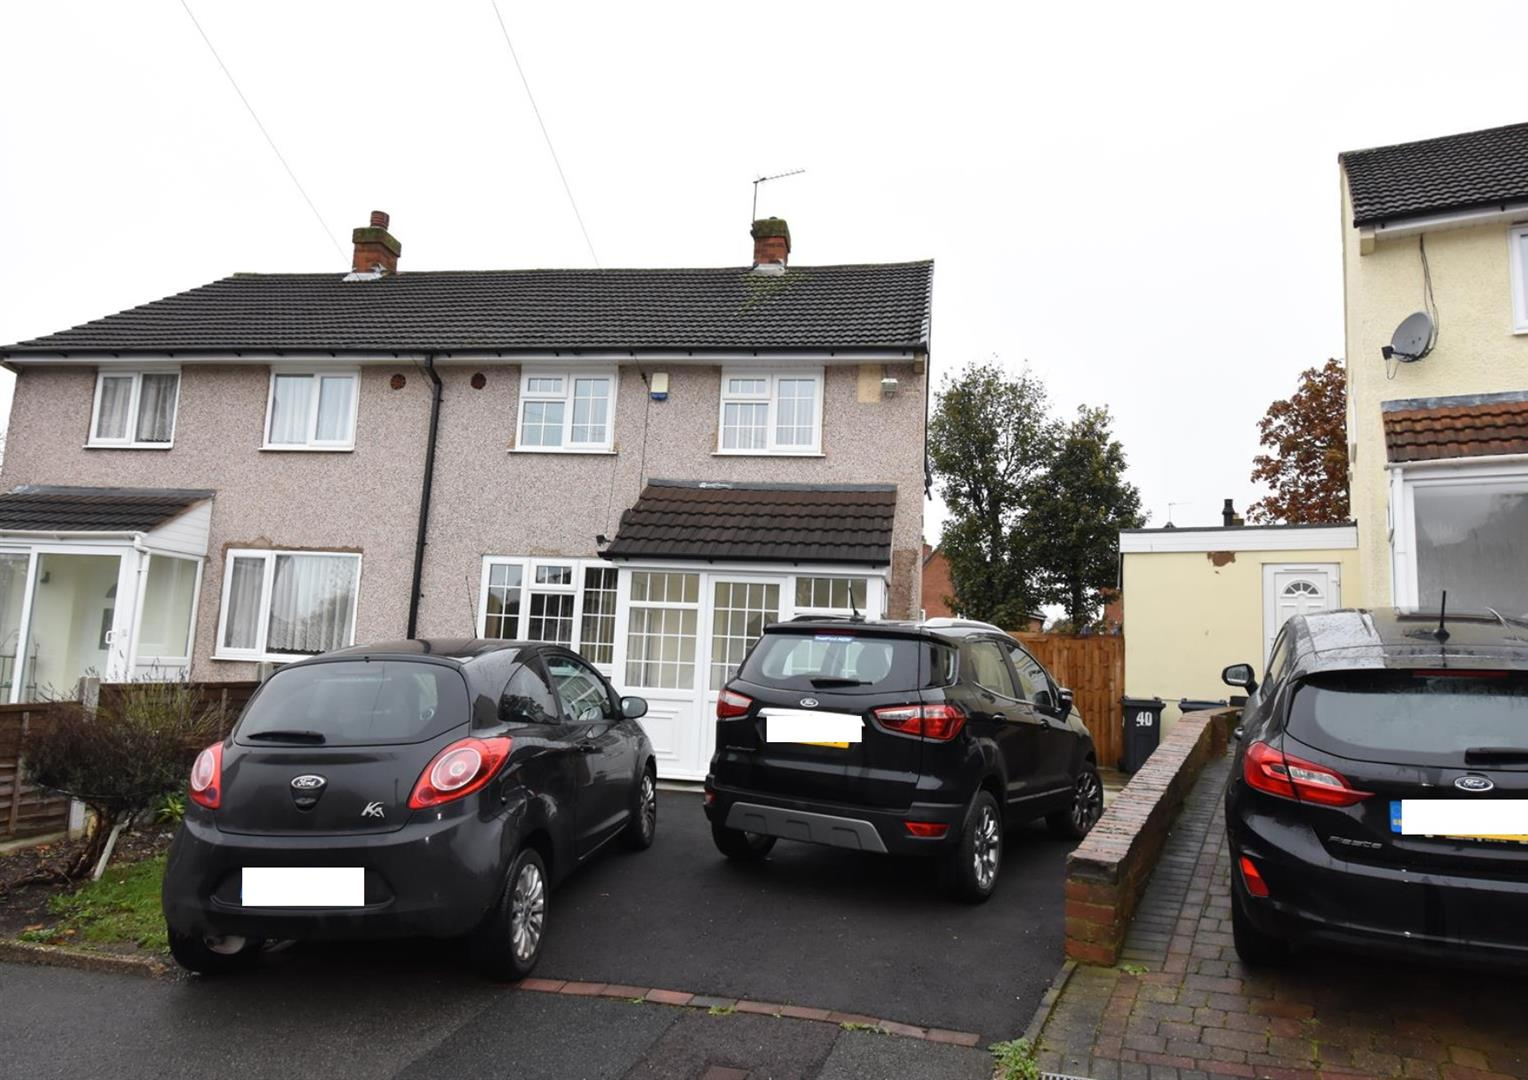 3 bed house for sale in Shopton Road, Birmingham, B34